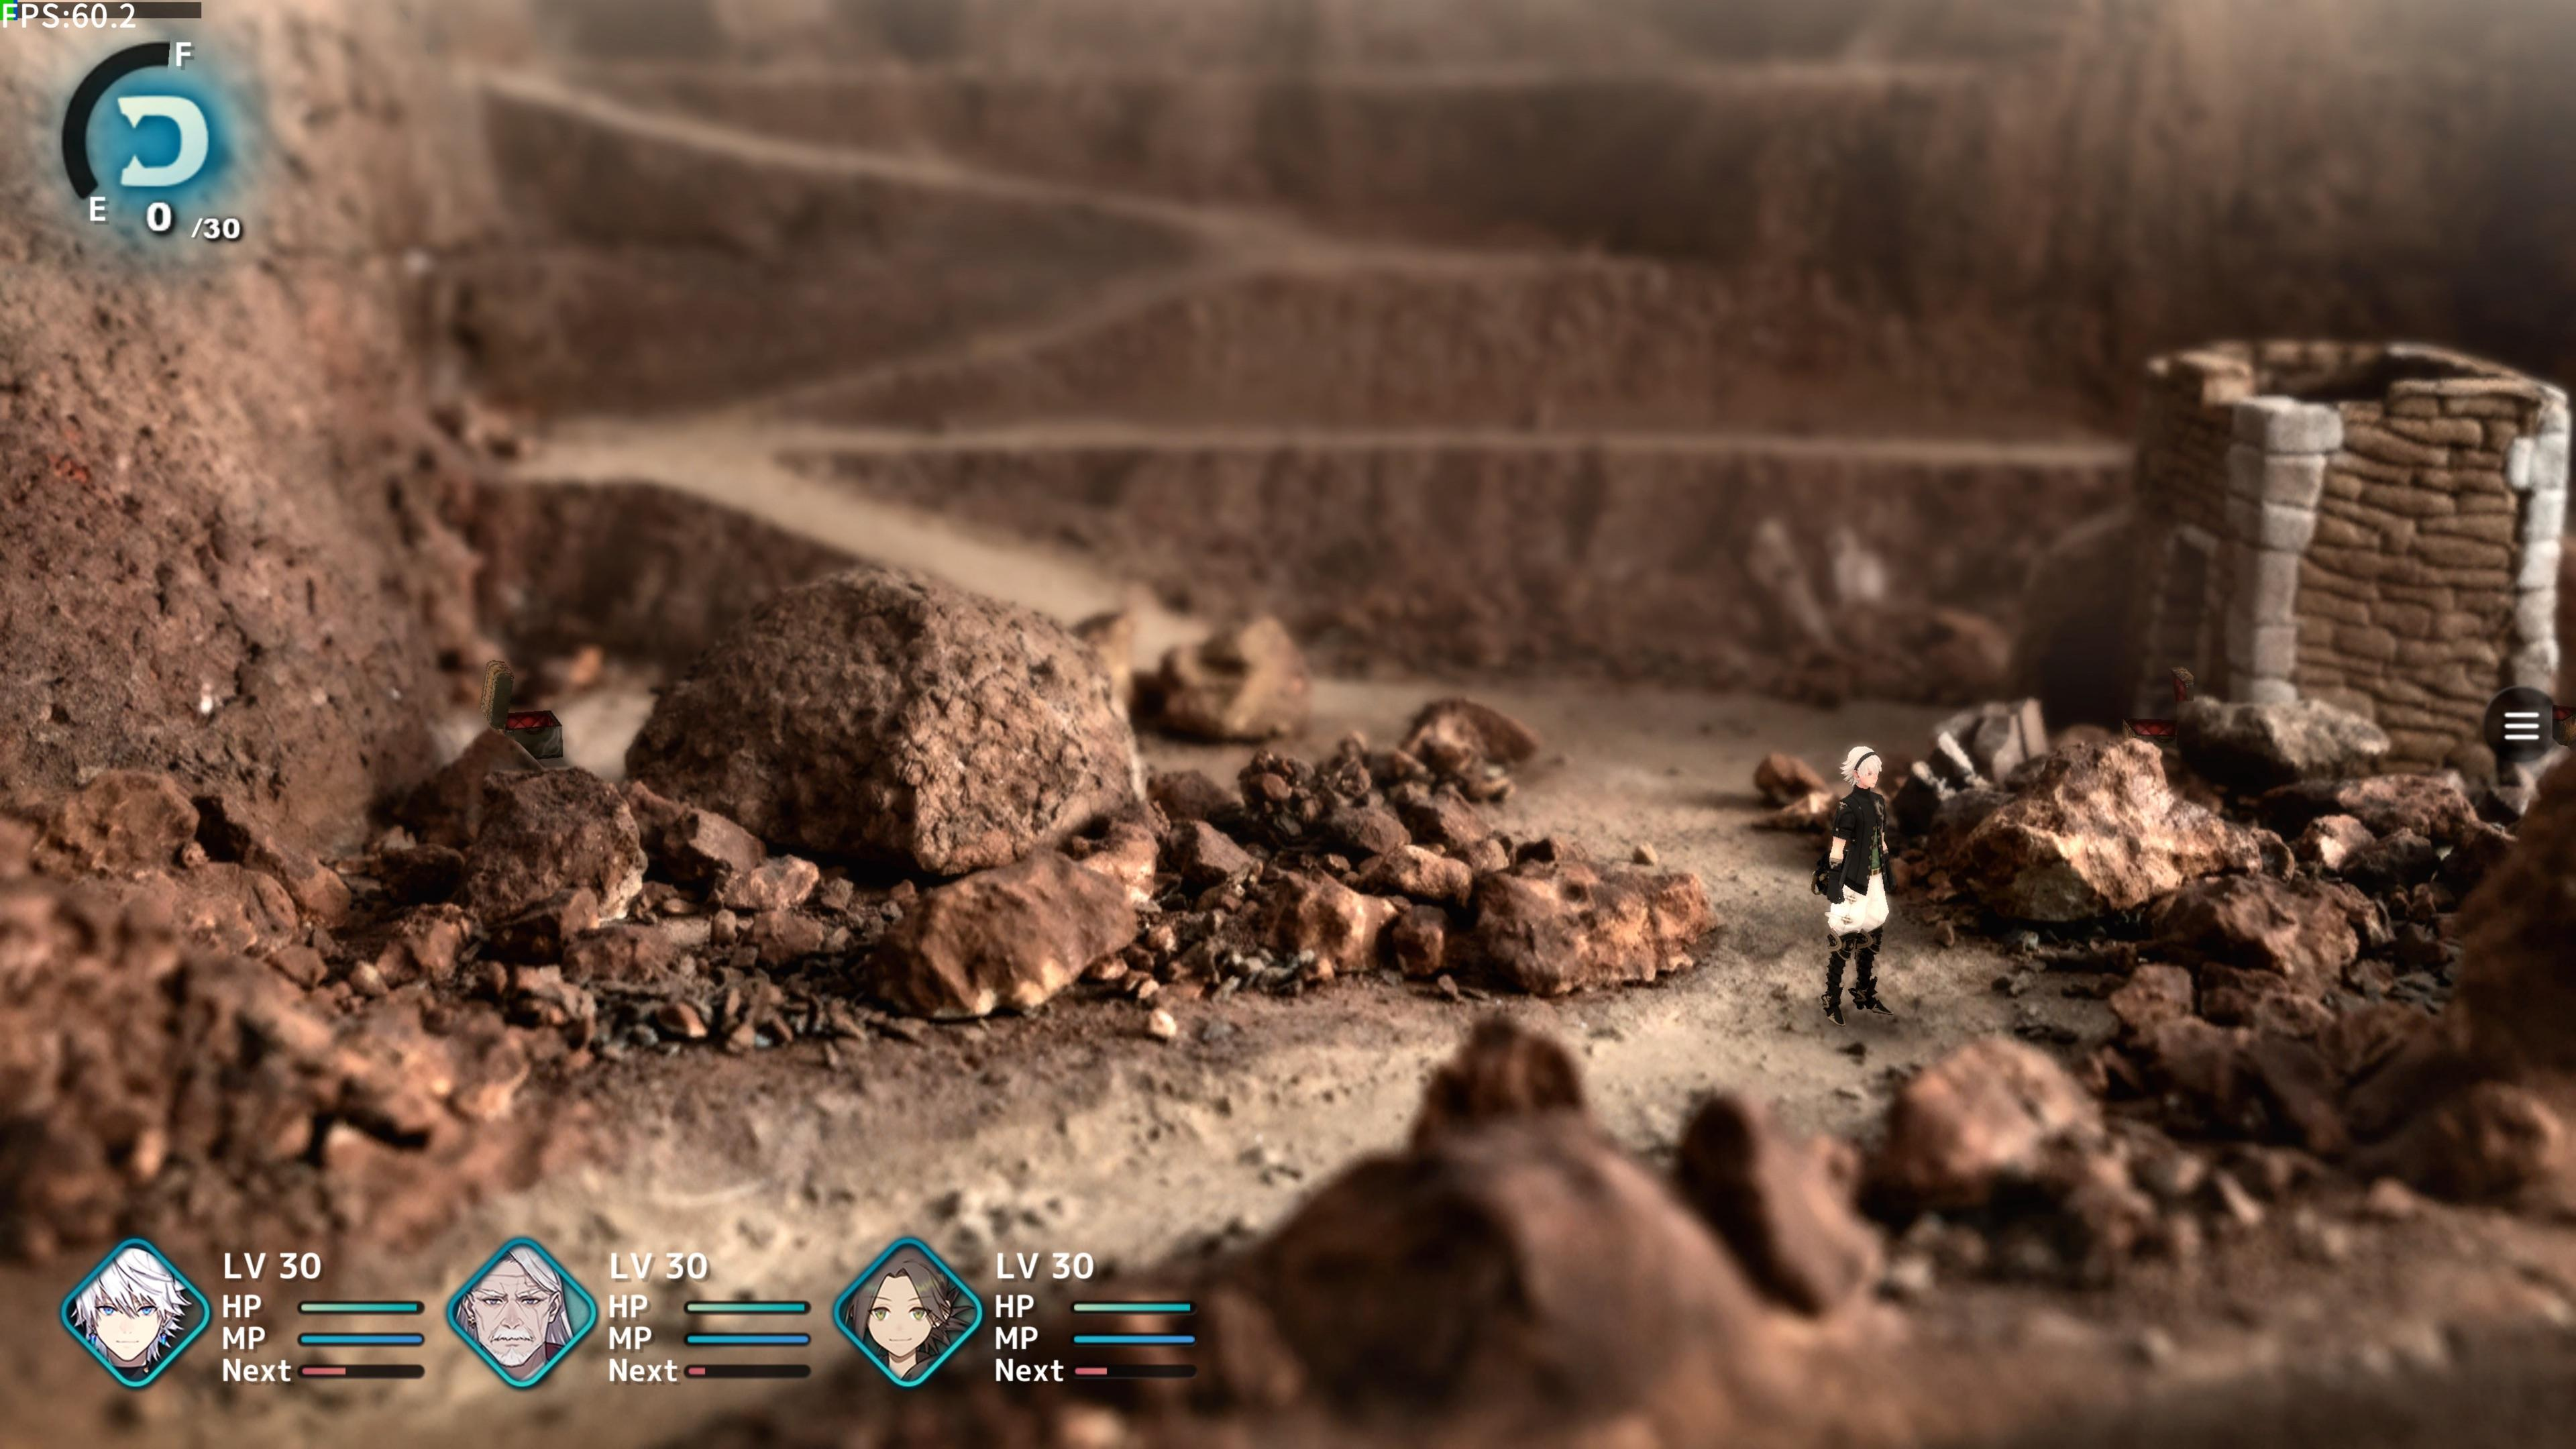 Fantasian - a character stands in the middle of a diorama, representing an elaborate 3D canyon.